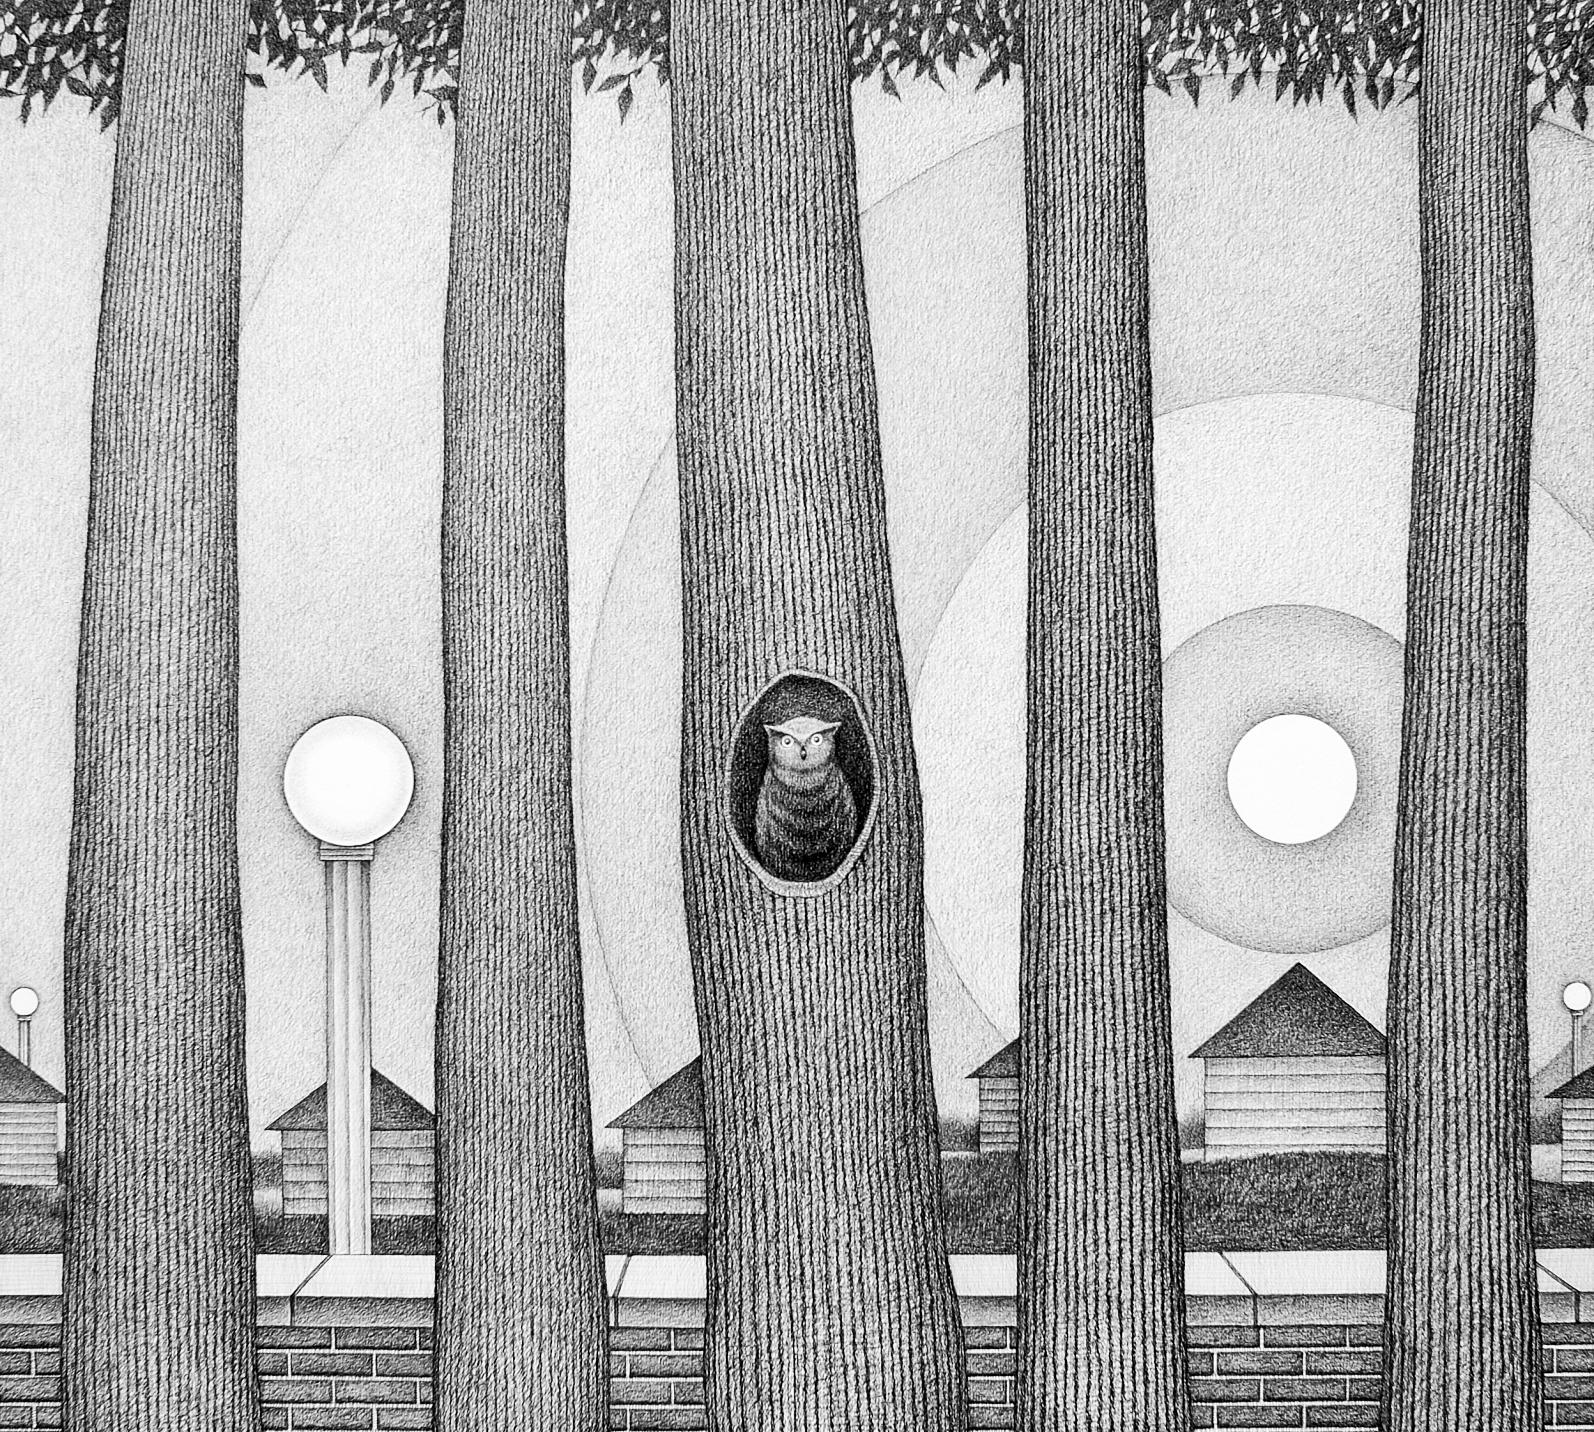 Rising I, Surrealist Landscape w/ Row of Trees & Owl, Graphite on Archival Paper